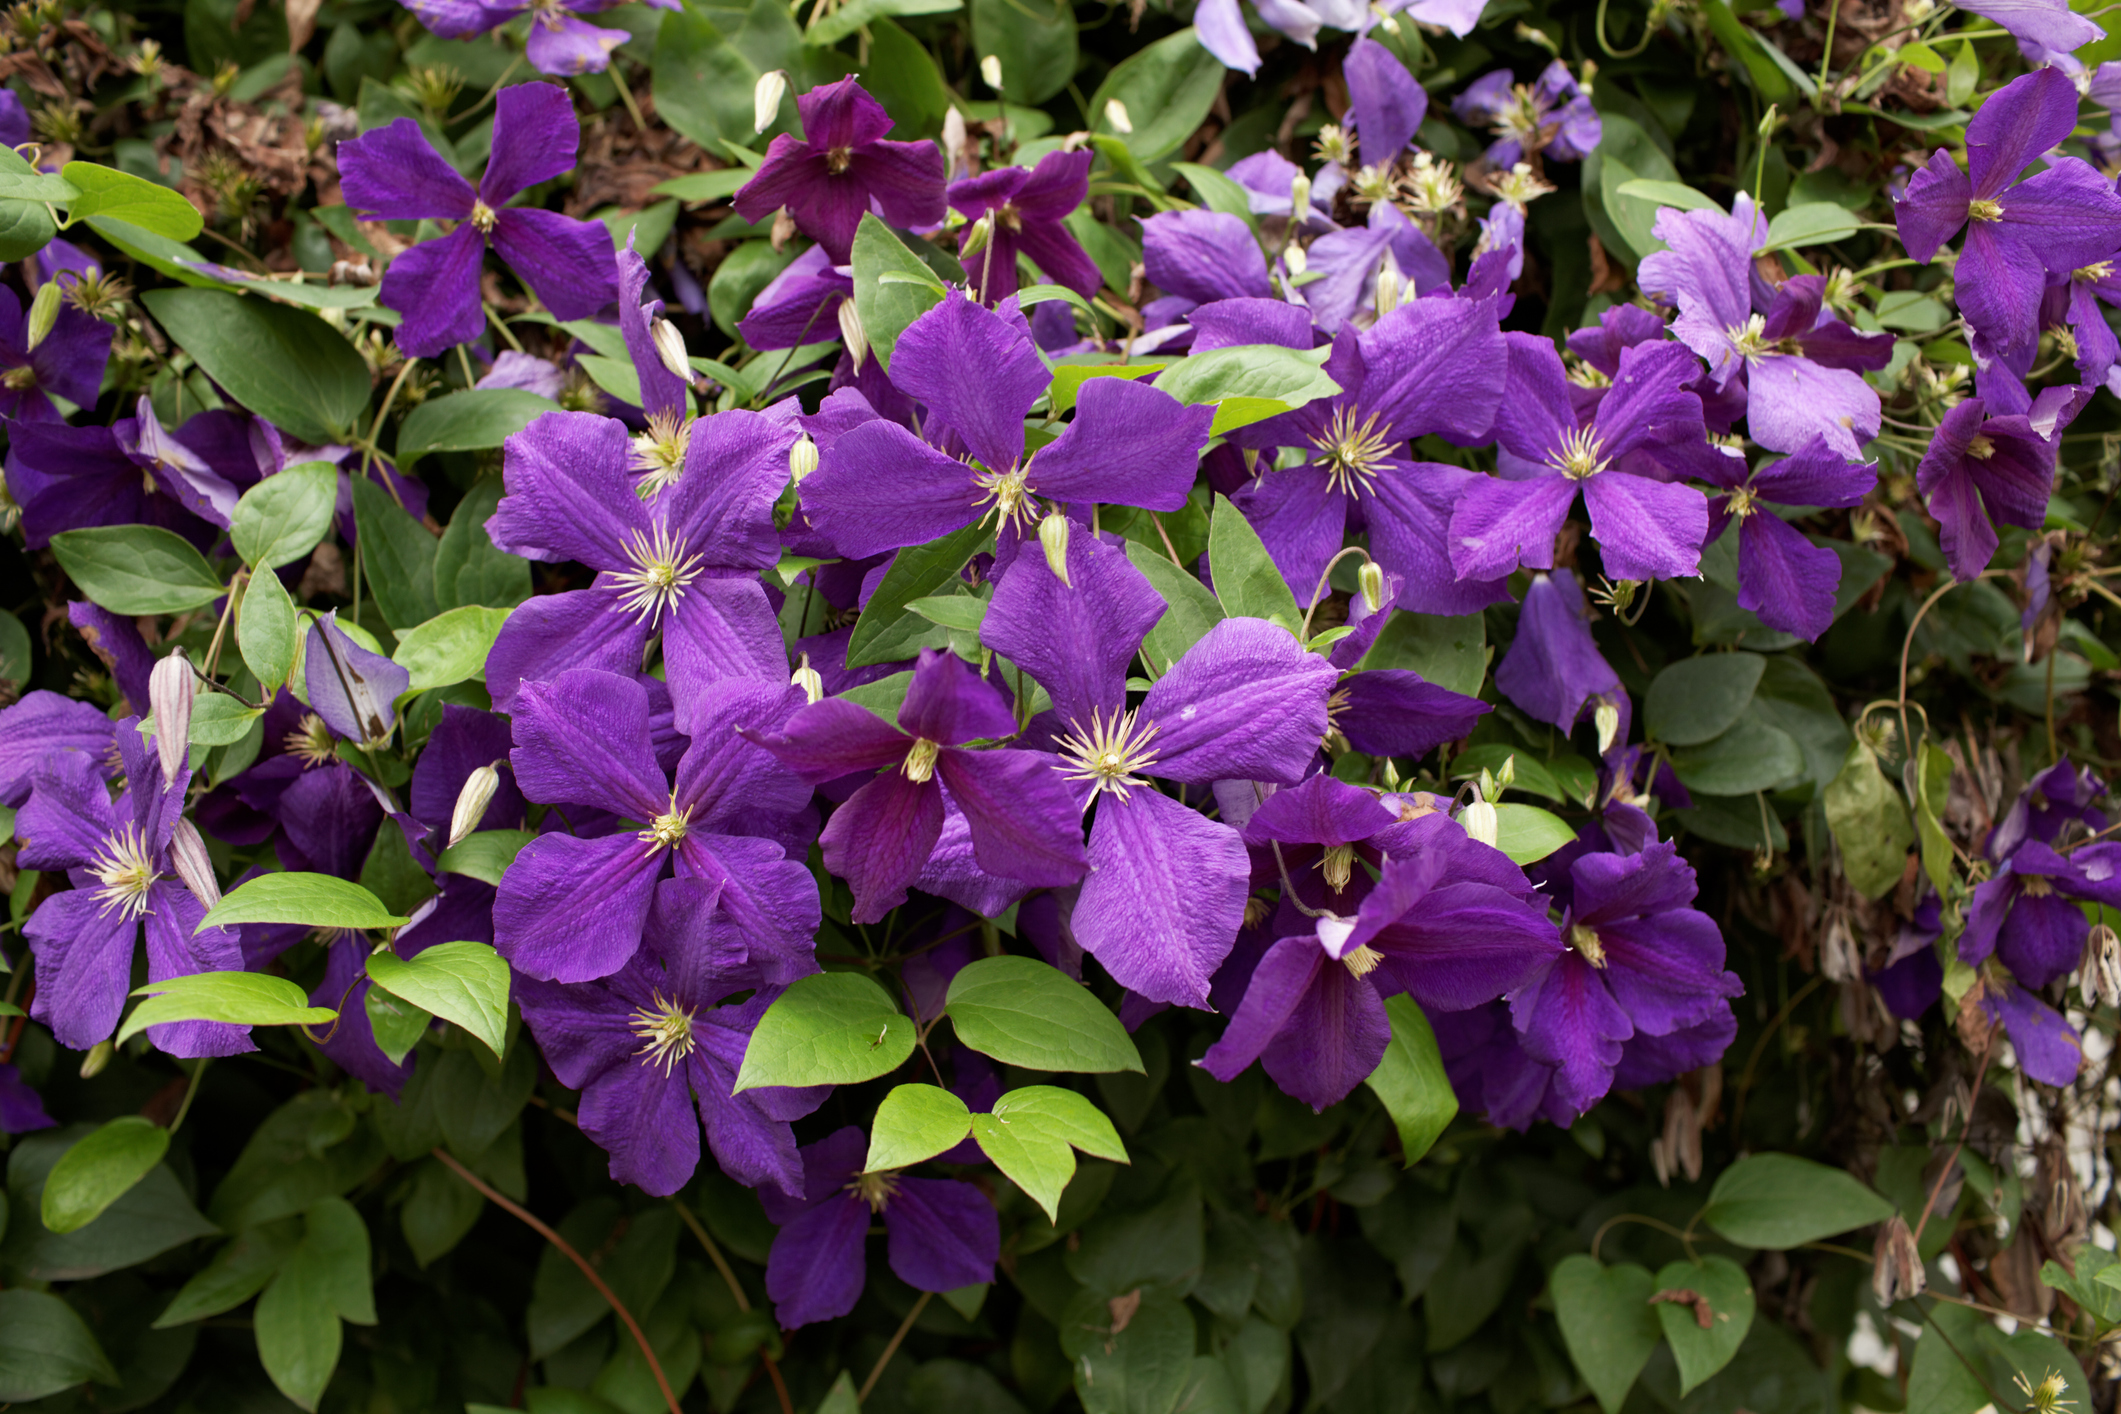 Clematis Jackmanii flowers on old and new wood, putting it in group 2 and 3. This means pruning lightly right after blooming and every few years, pruning it to the ground for rejuvenation. When pruning hard in fall or early winter, expect blooms to be reduced until the plant has time to reestablish.